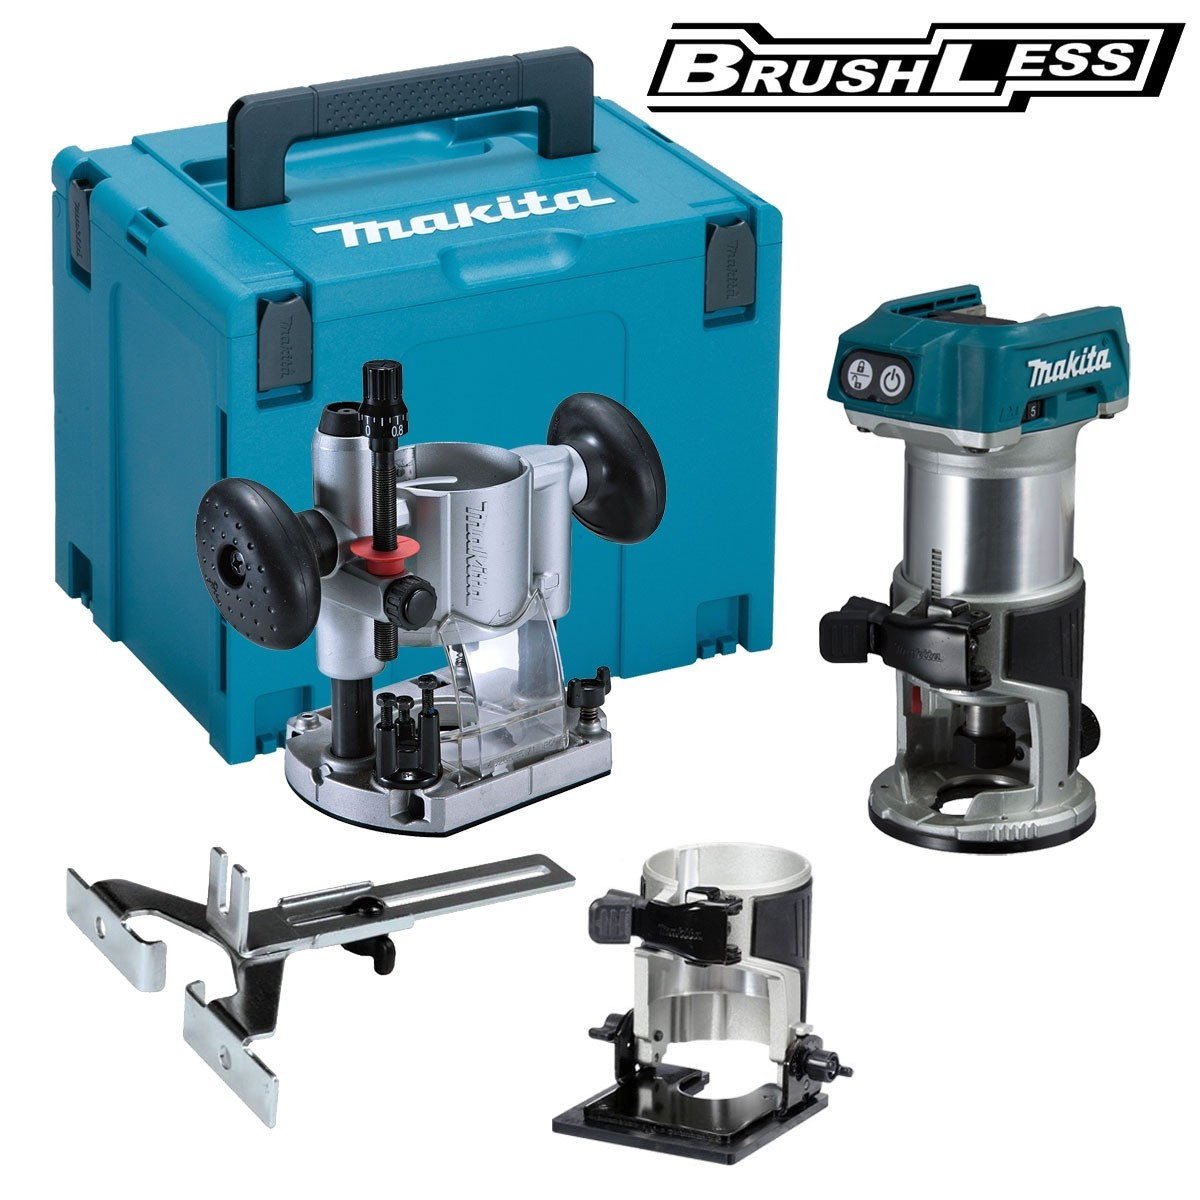 Makita Freesmachine Makita Drt50zjx2 Accu Freesmachine 18v Li Ion Zonder Accu S En Lader Toolmax